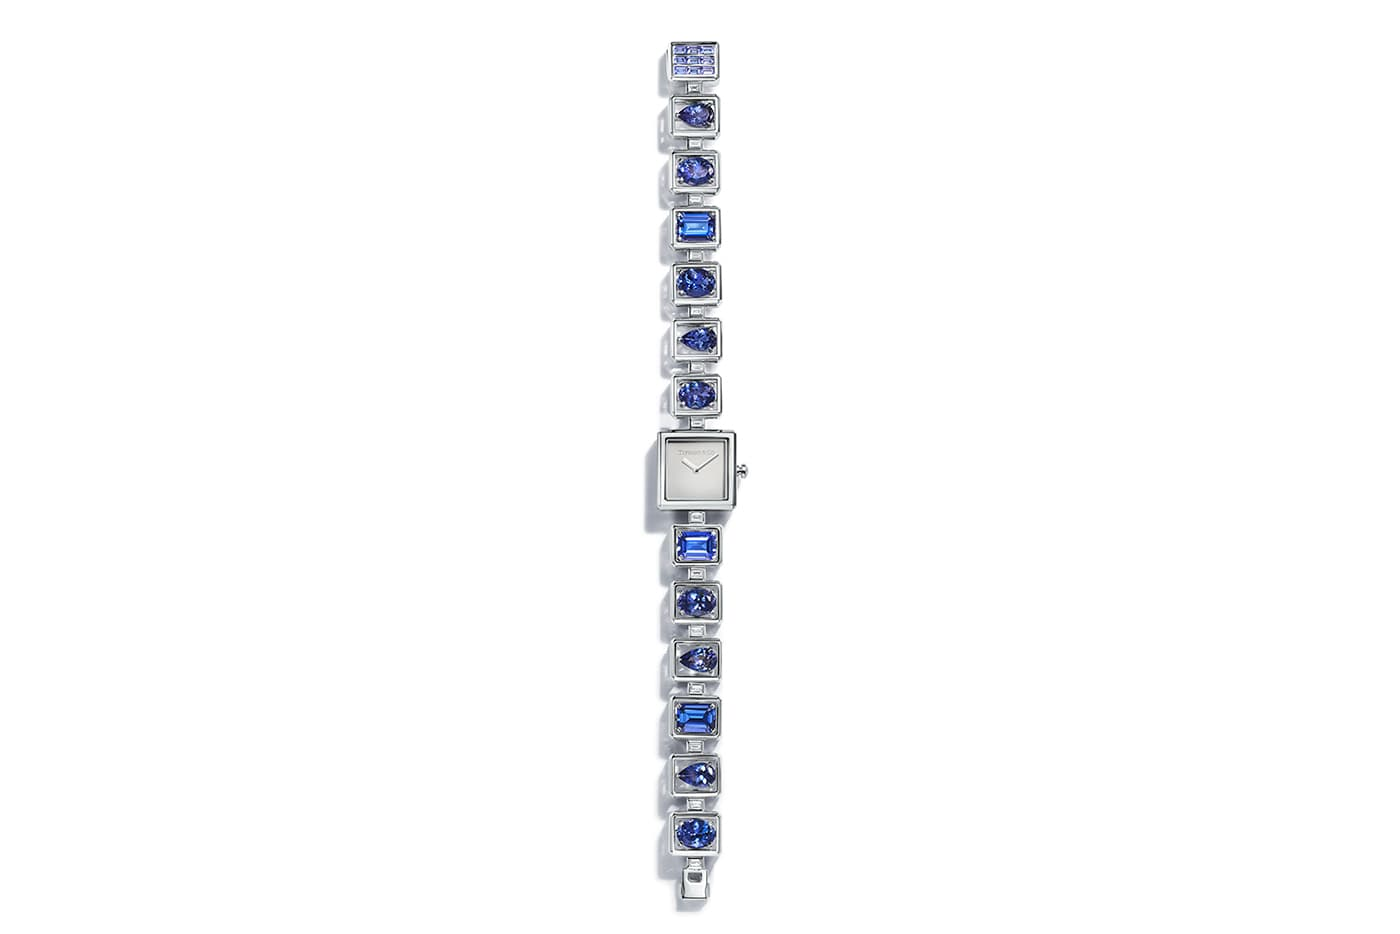 Tiffany&Co. Blue Book 2019 collection watch with over 15ct tanzanites and diamonds in white gold